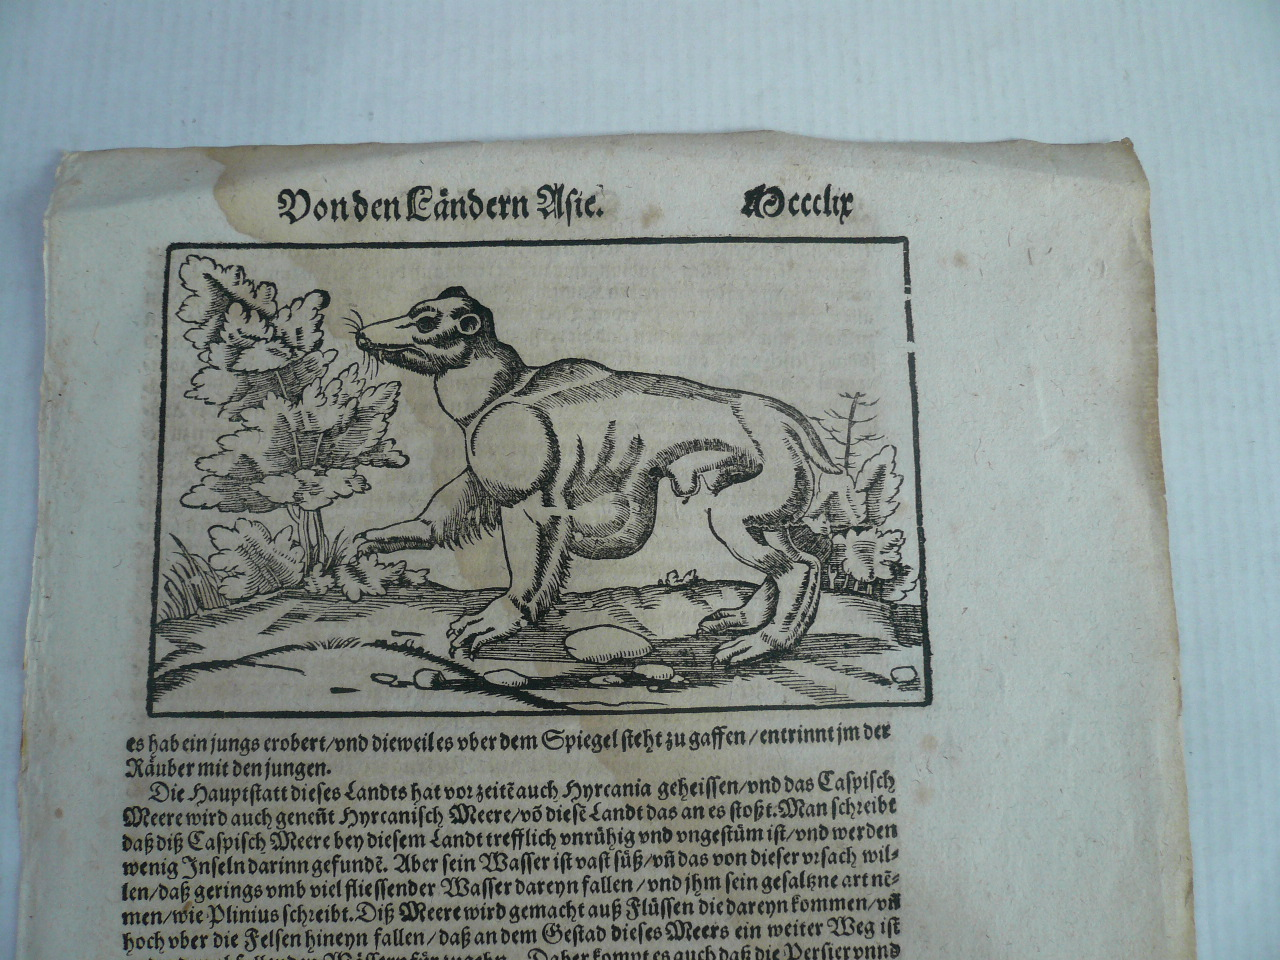 Panther, anno 1590, Sebastian Münster, Cosmographia